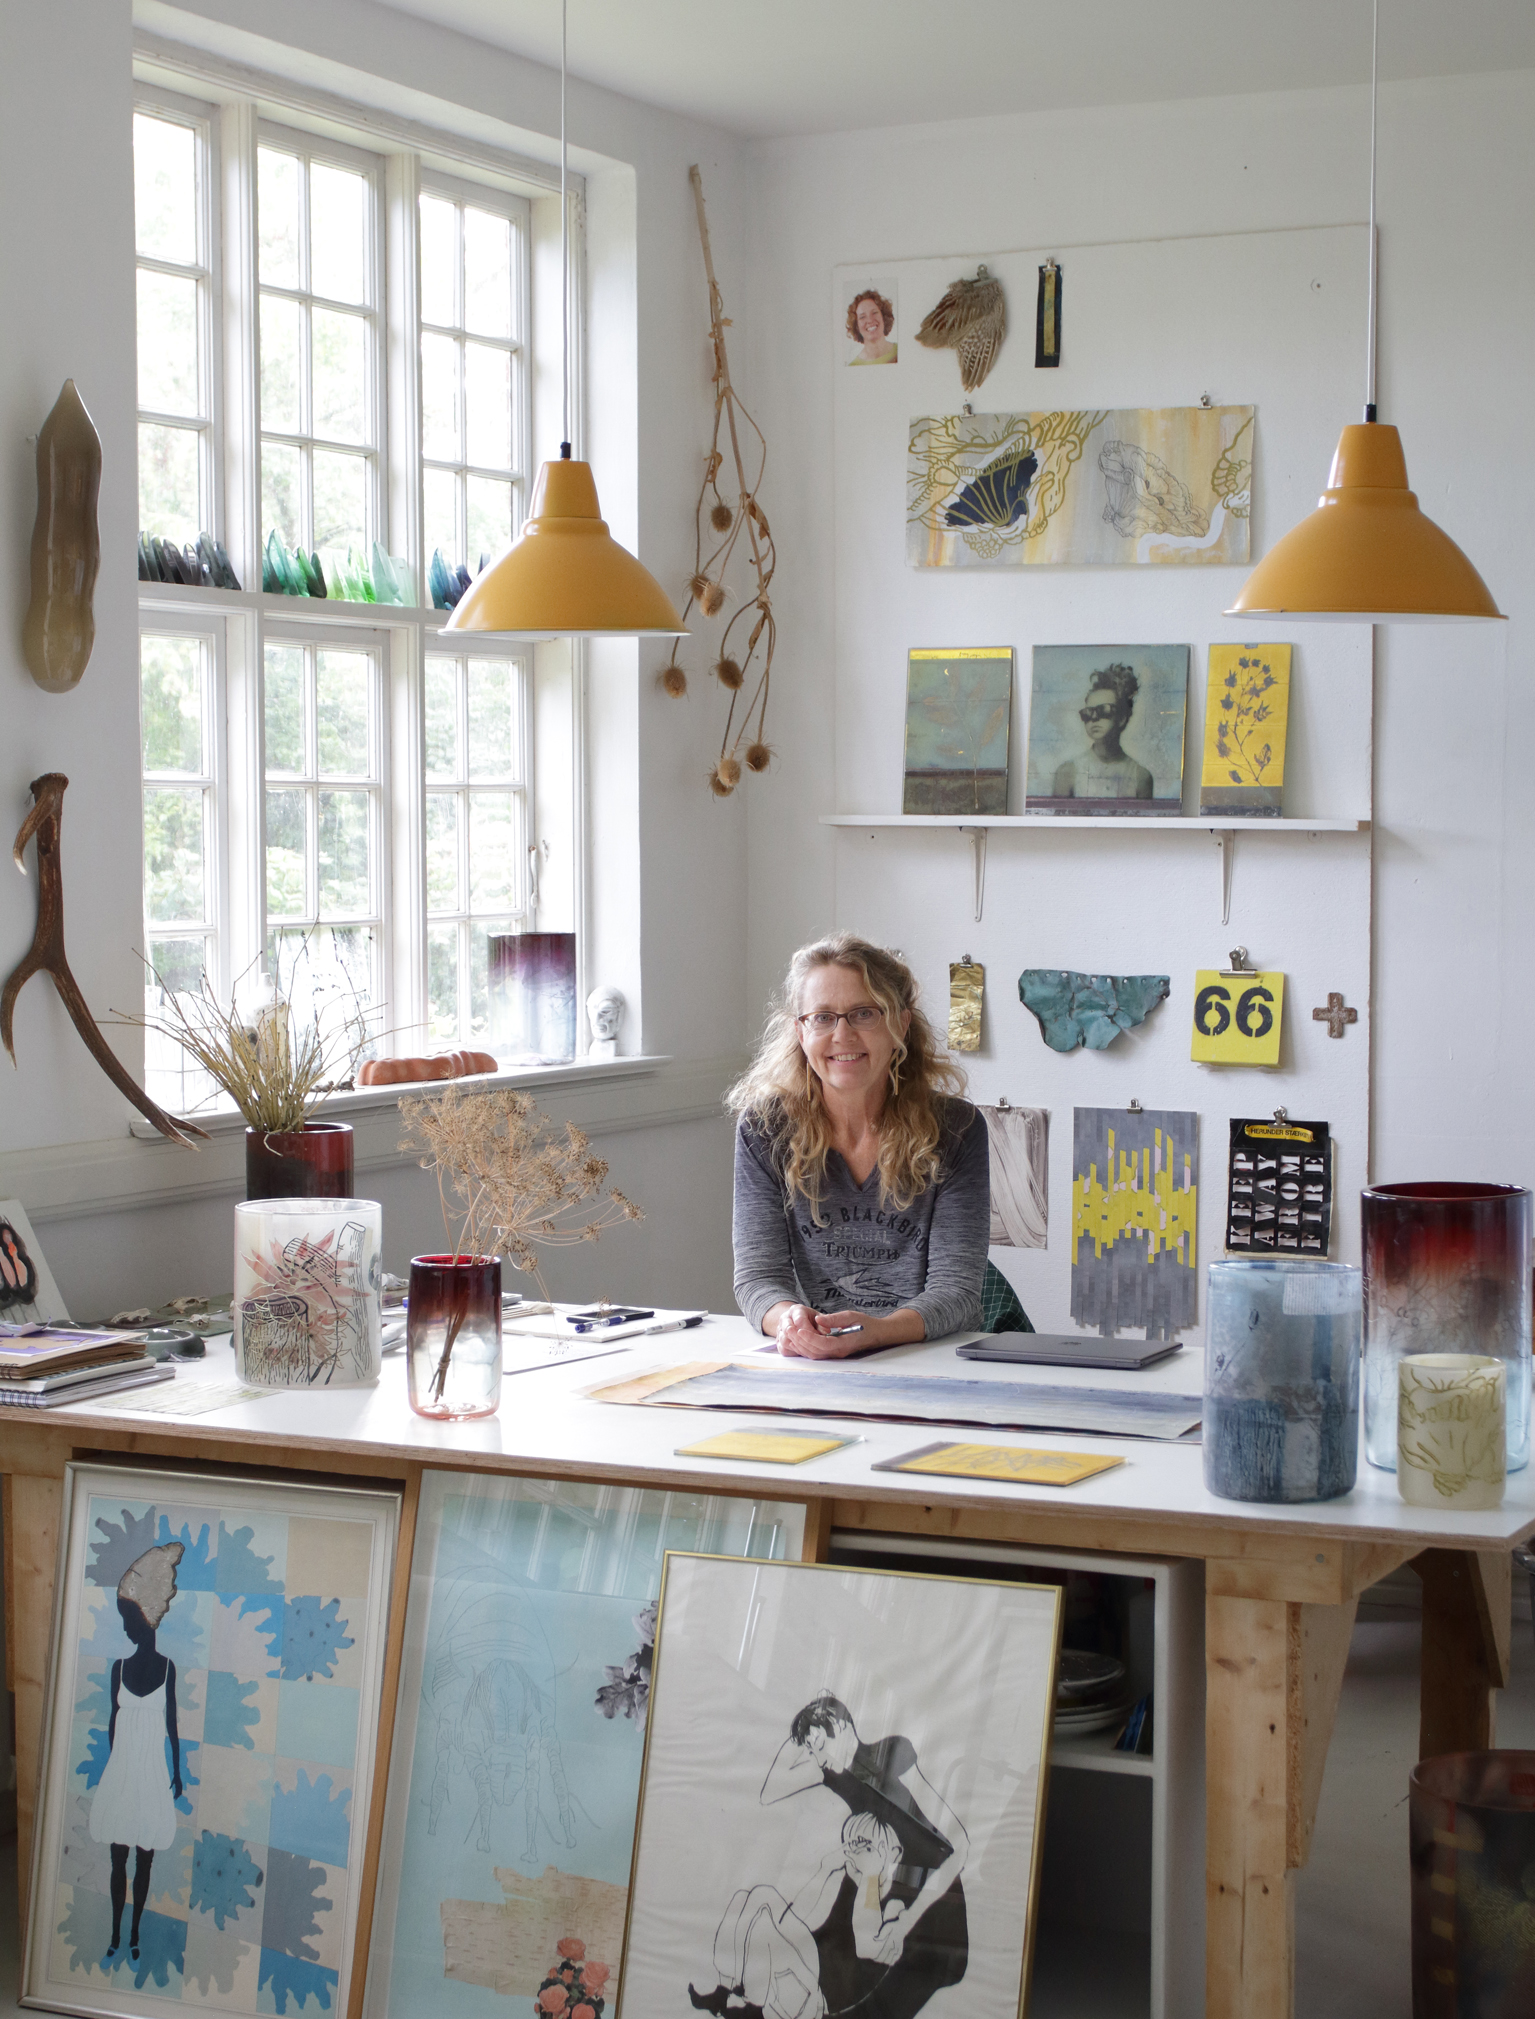 Micha Karlslund in her studio